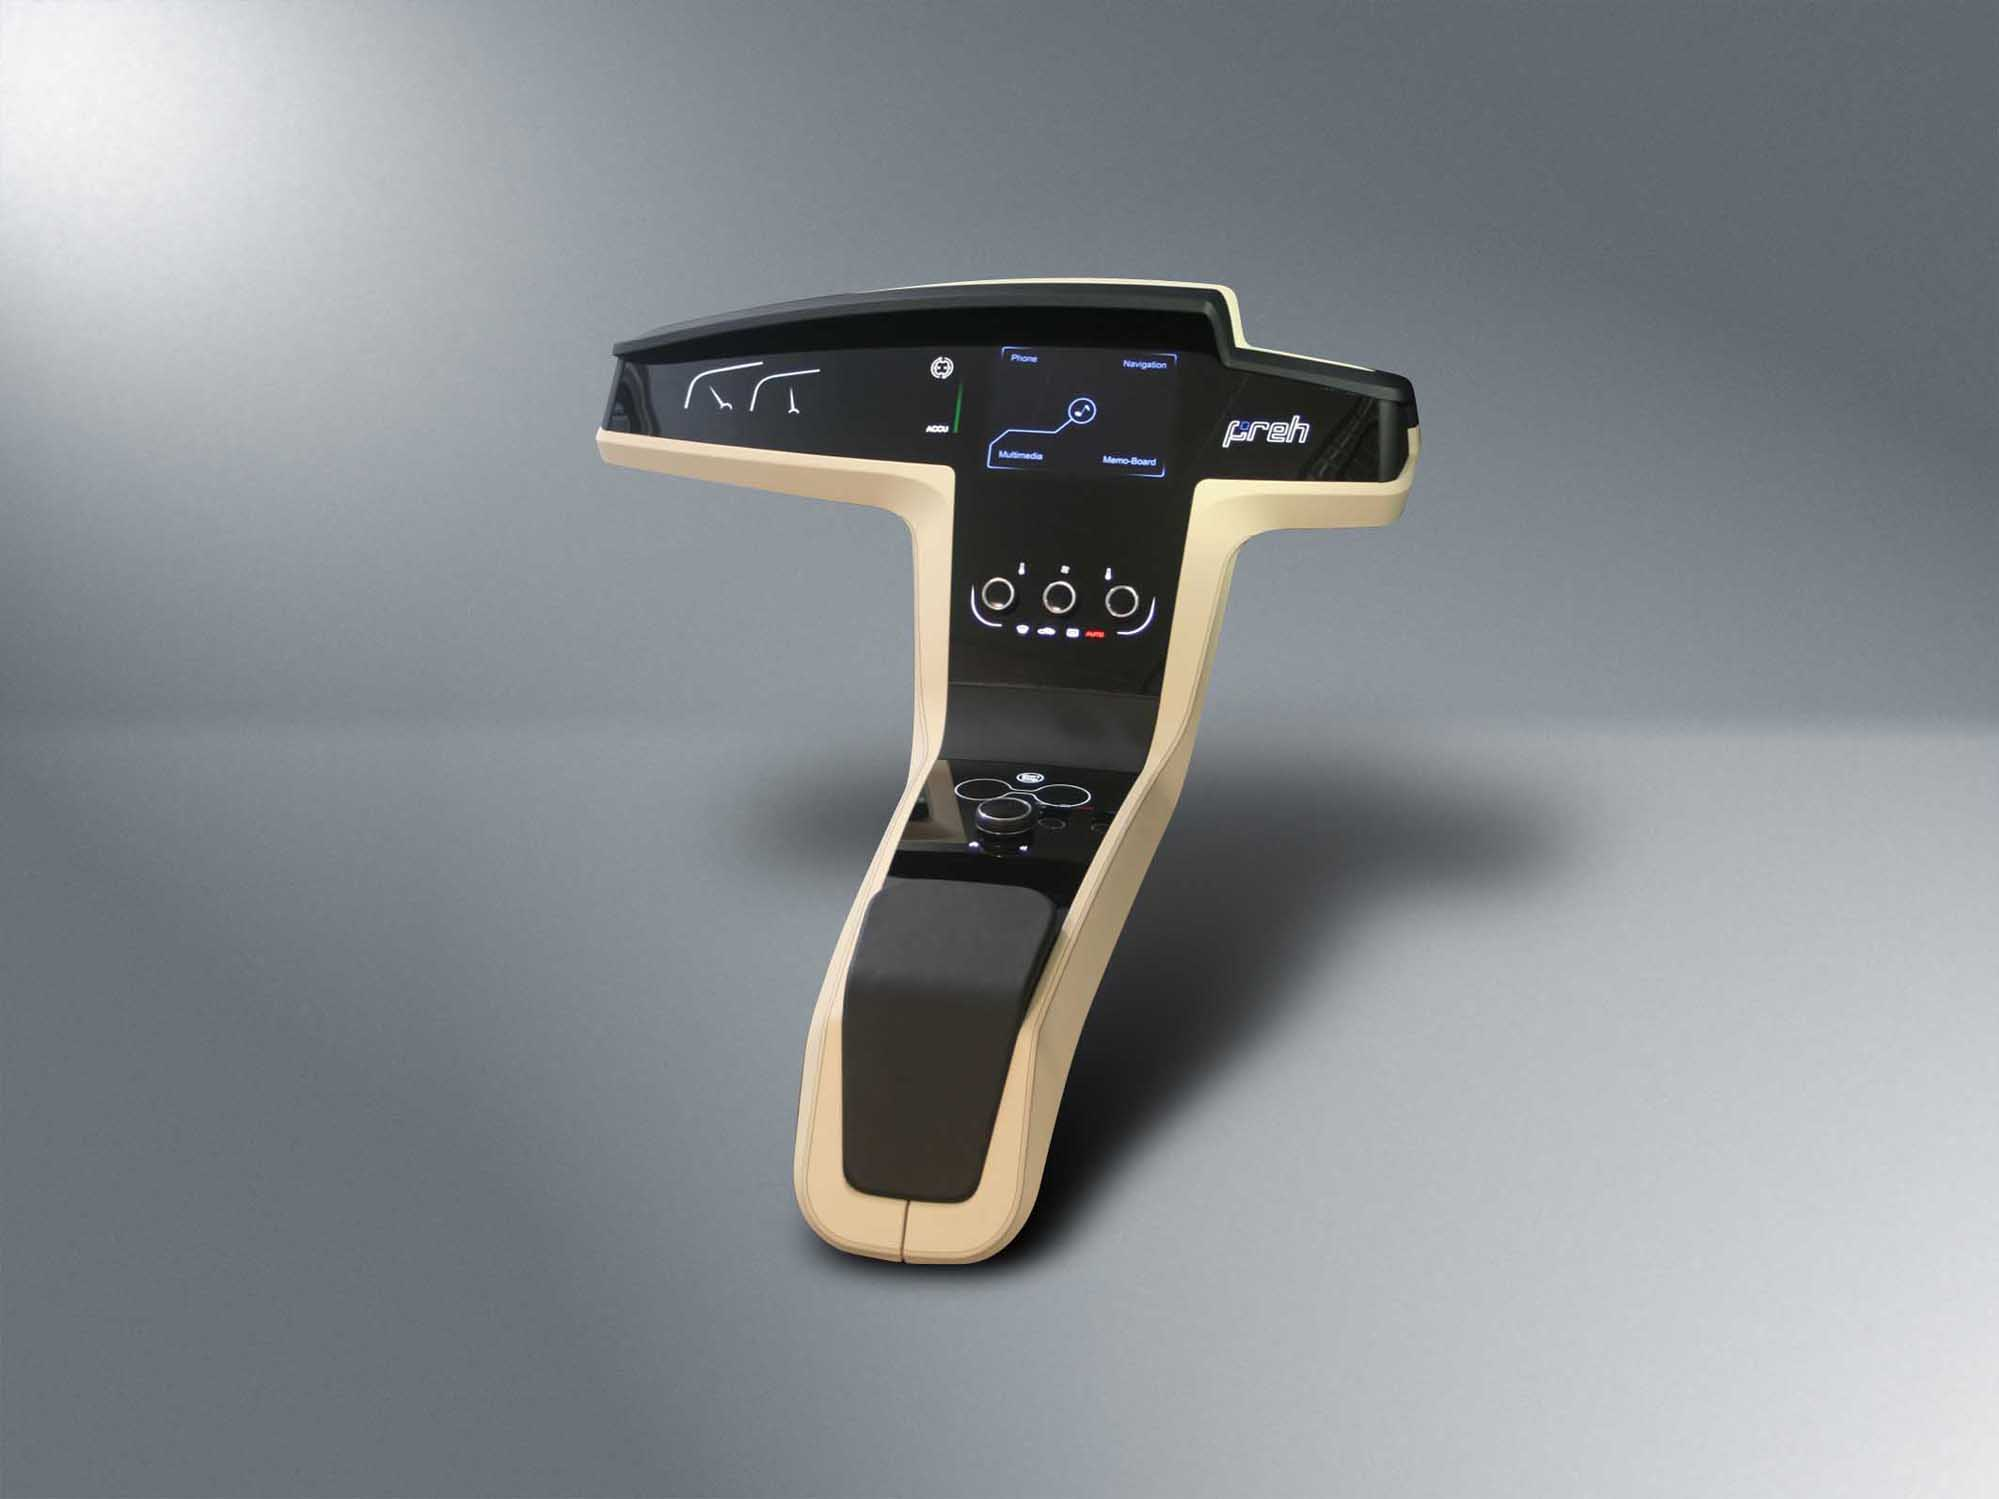 Preh Center Console Concept at IAA 2011